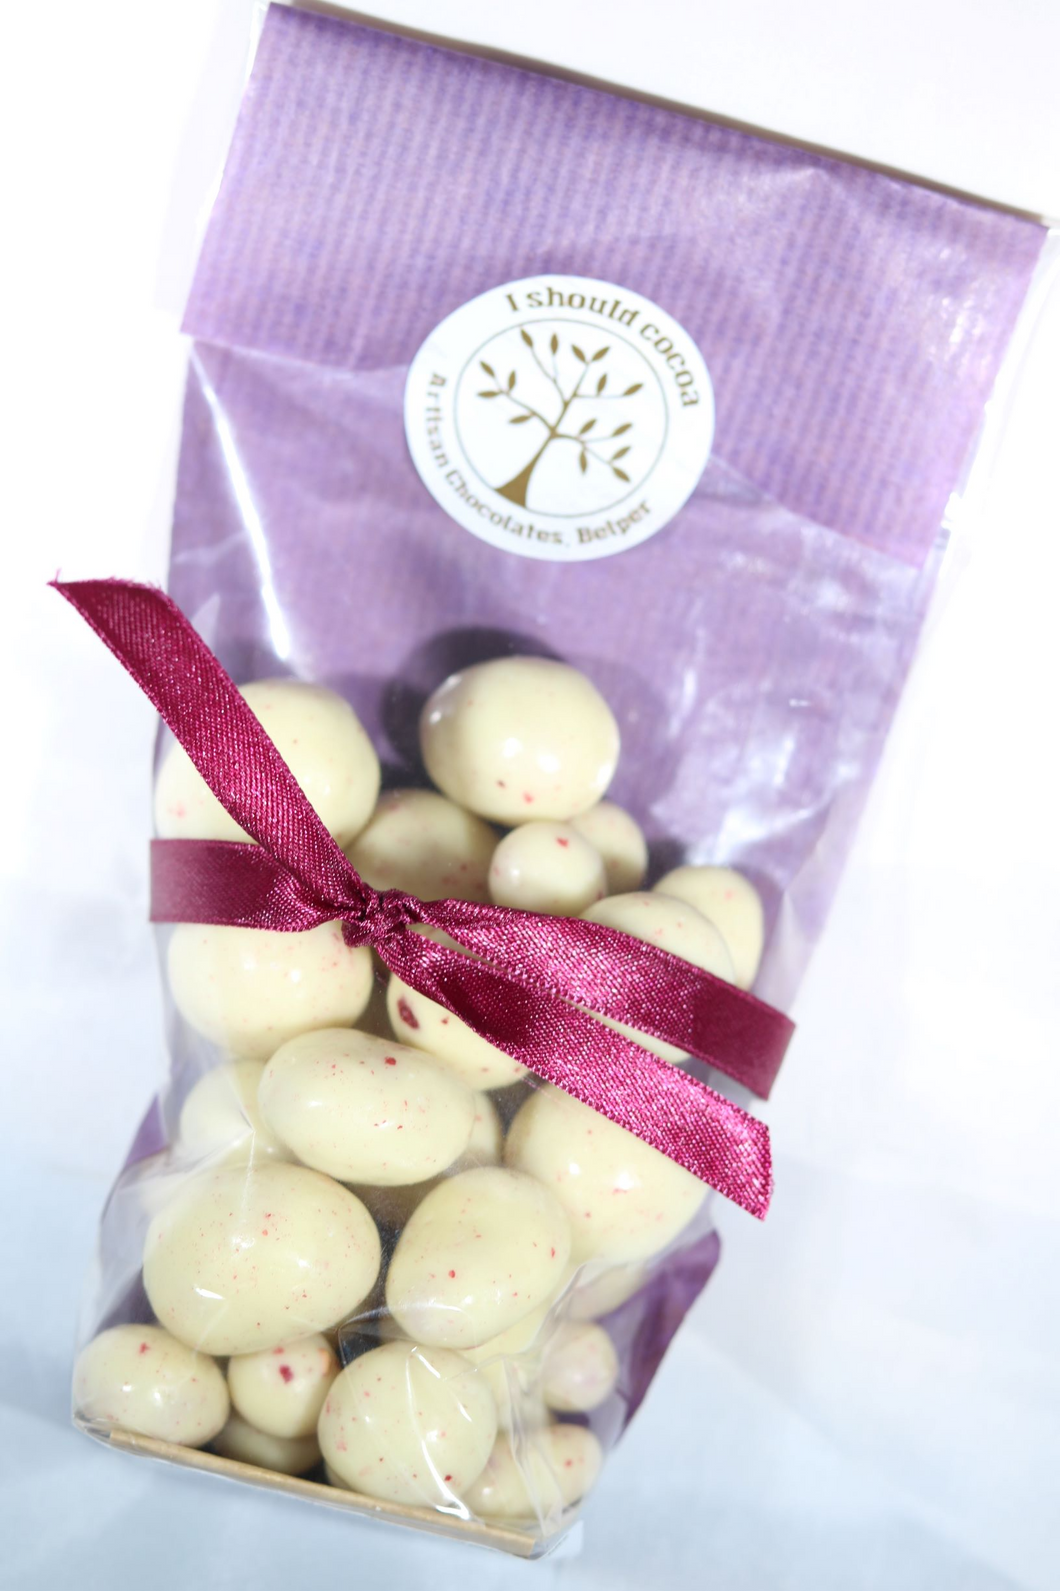 White chocolate covered raspberries